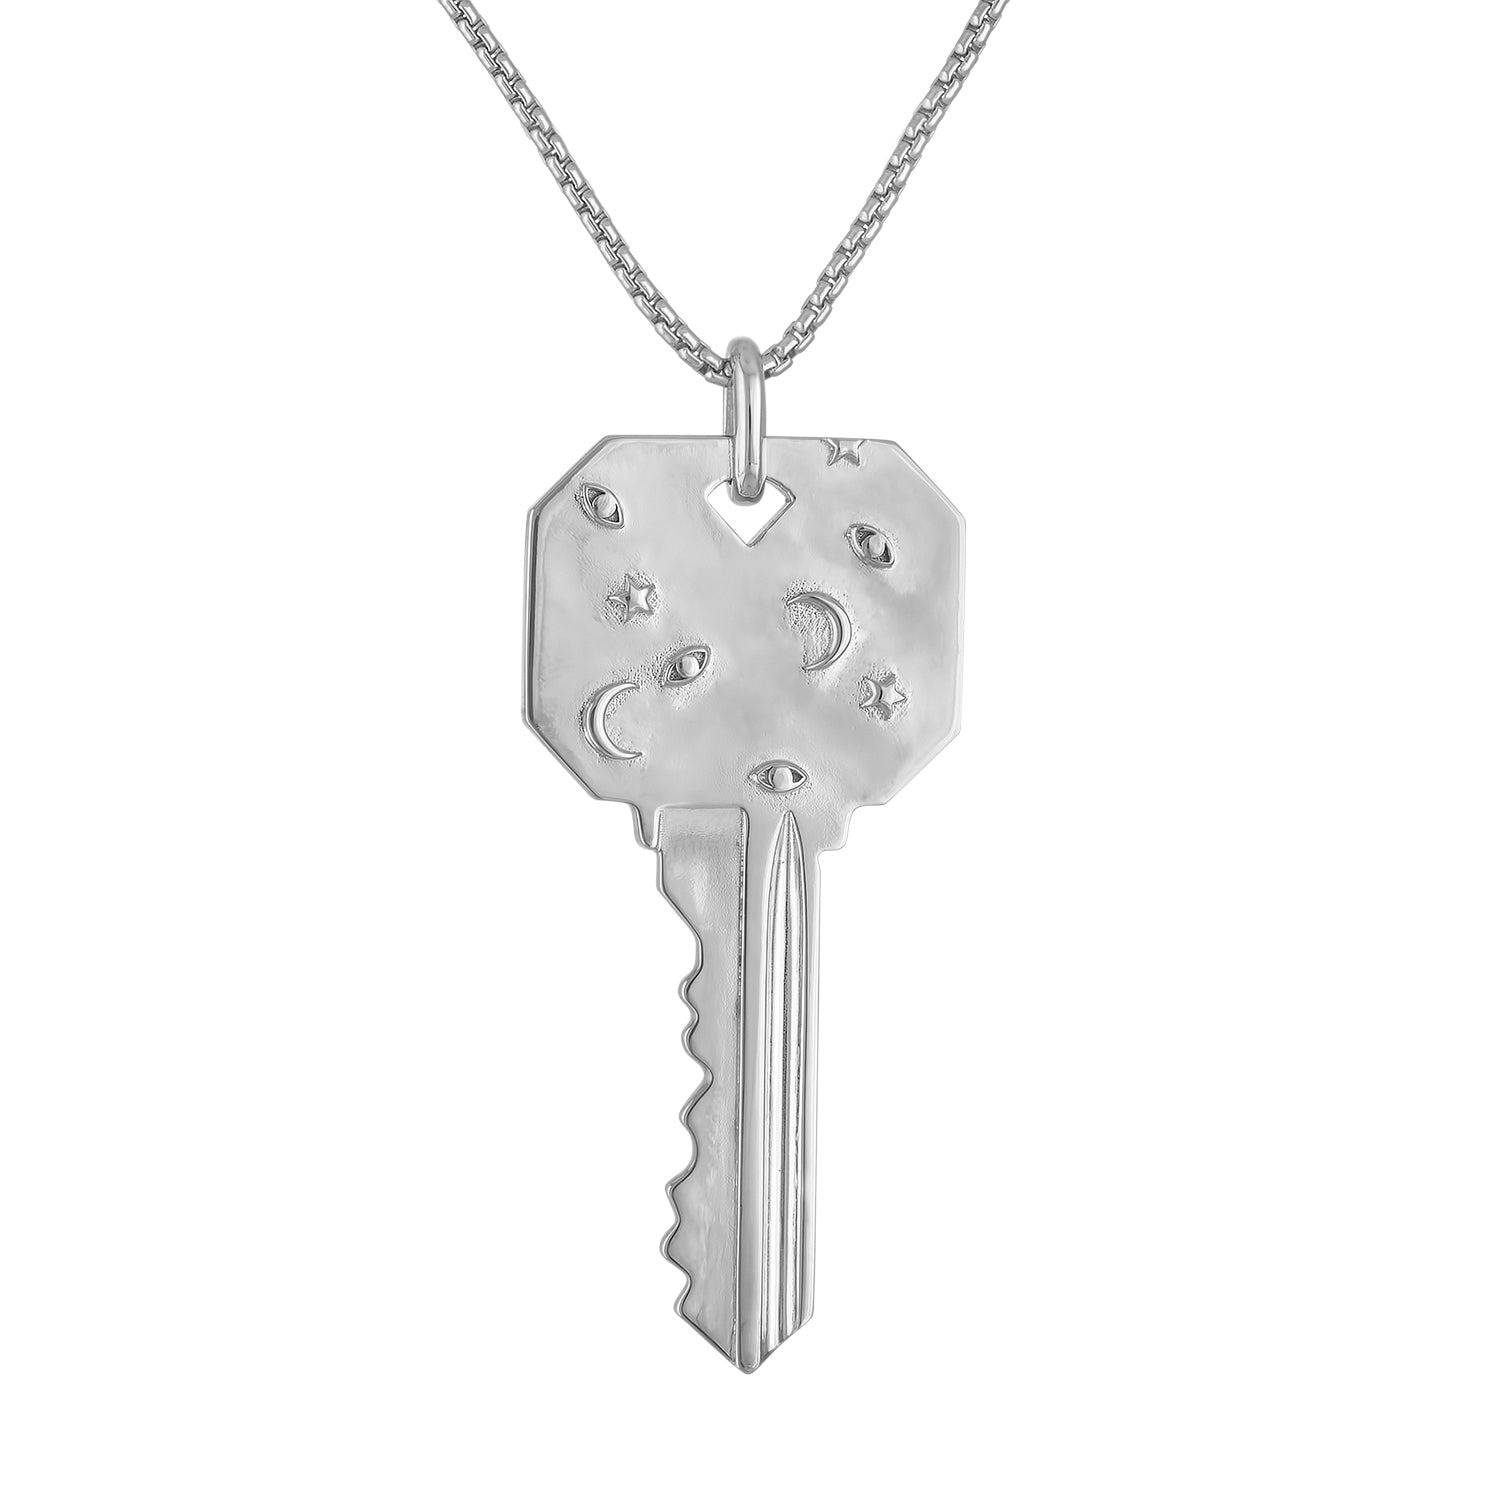 Large Cosmos Key Necklace